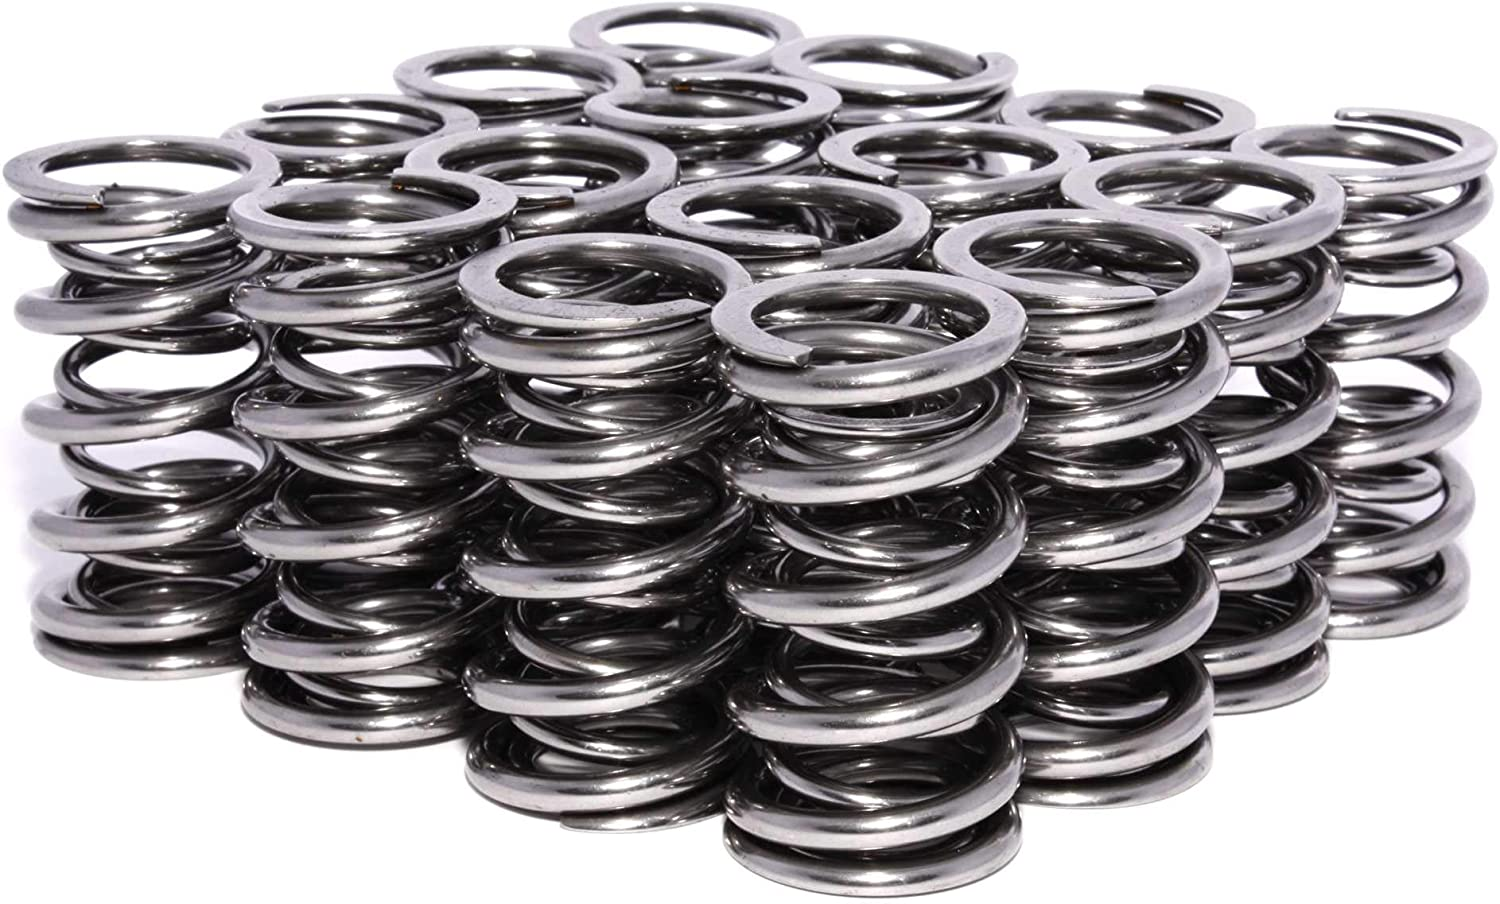 amazon com comp cams 26925 16 race street 1 320 od dual springs 1 810 installed height 16 springs automotive comp cams 26925 16 race street 1 320 od dual springs 1 810 installed height 16 springs